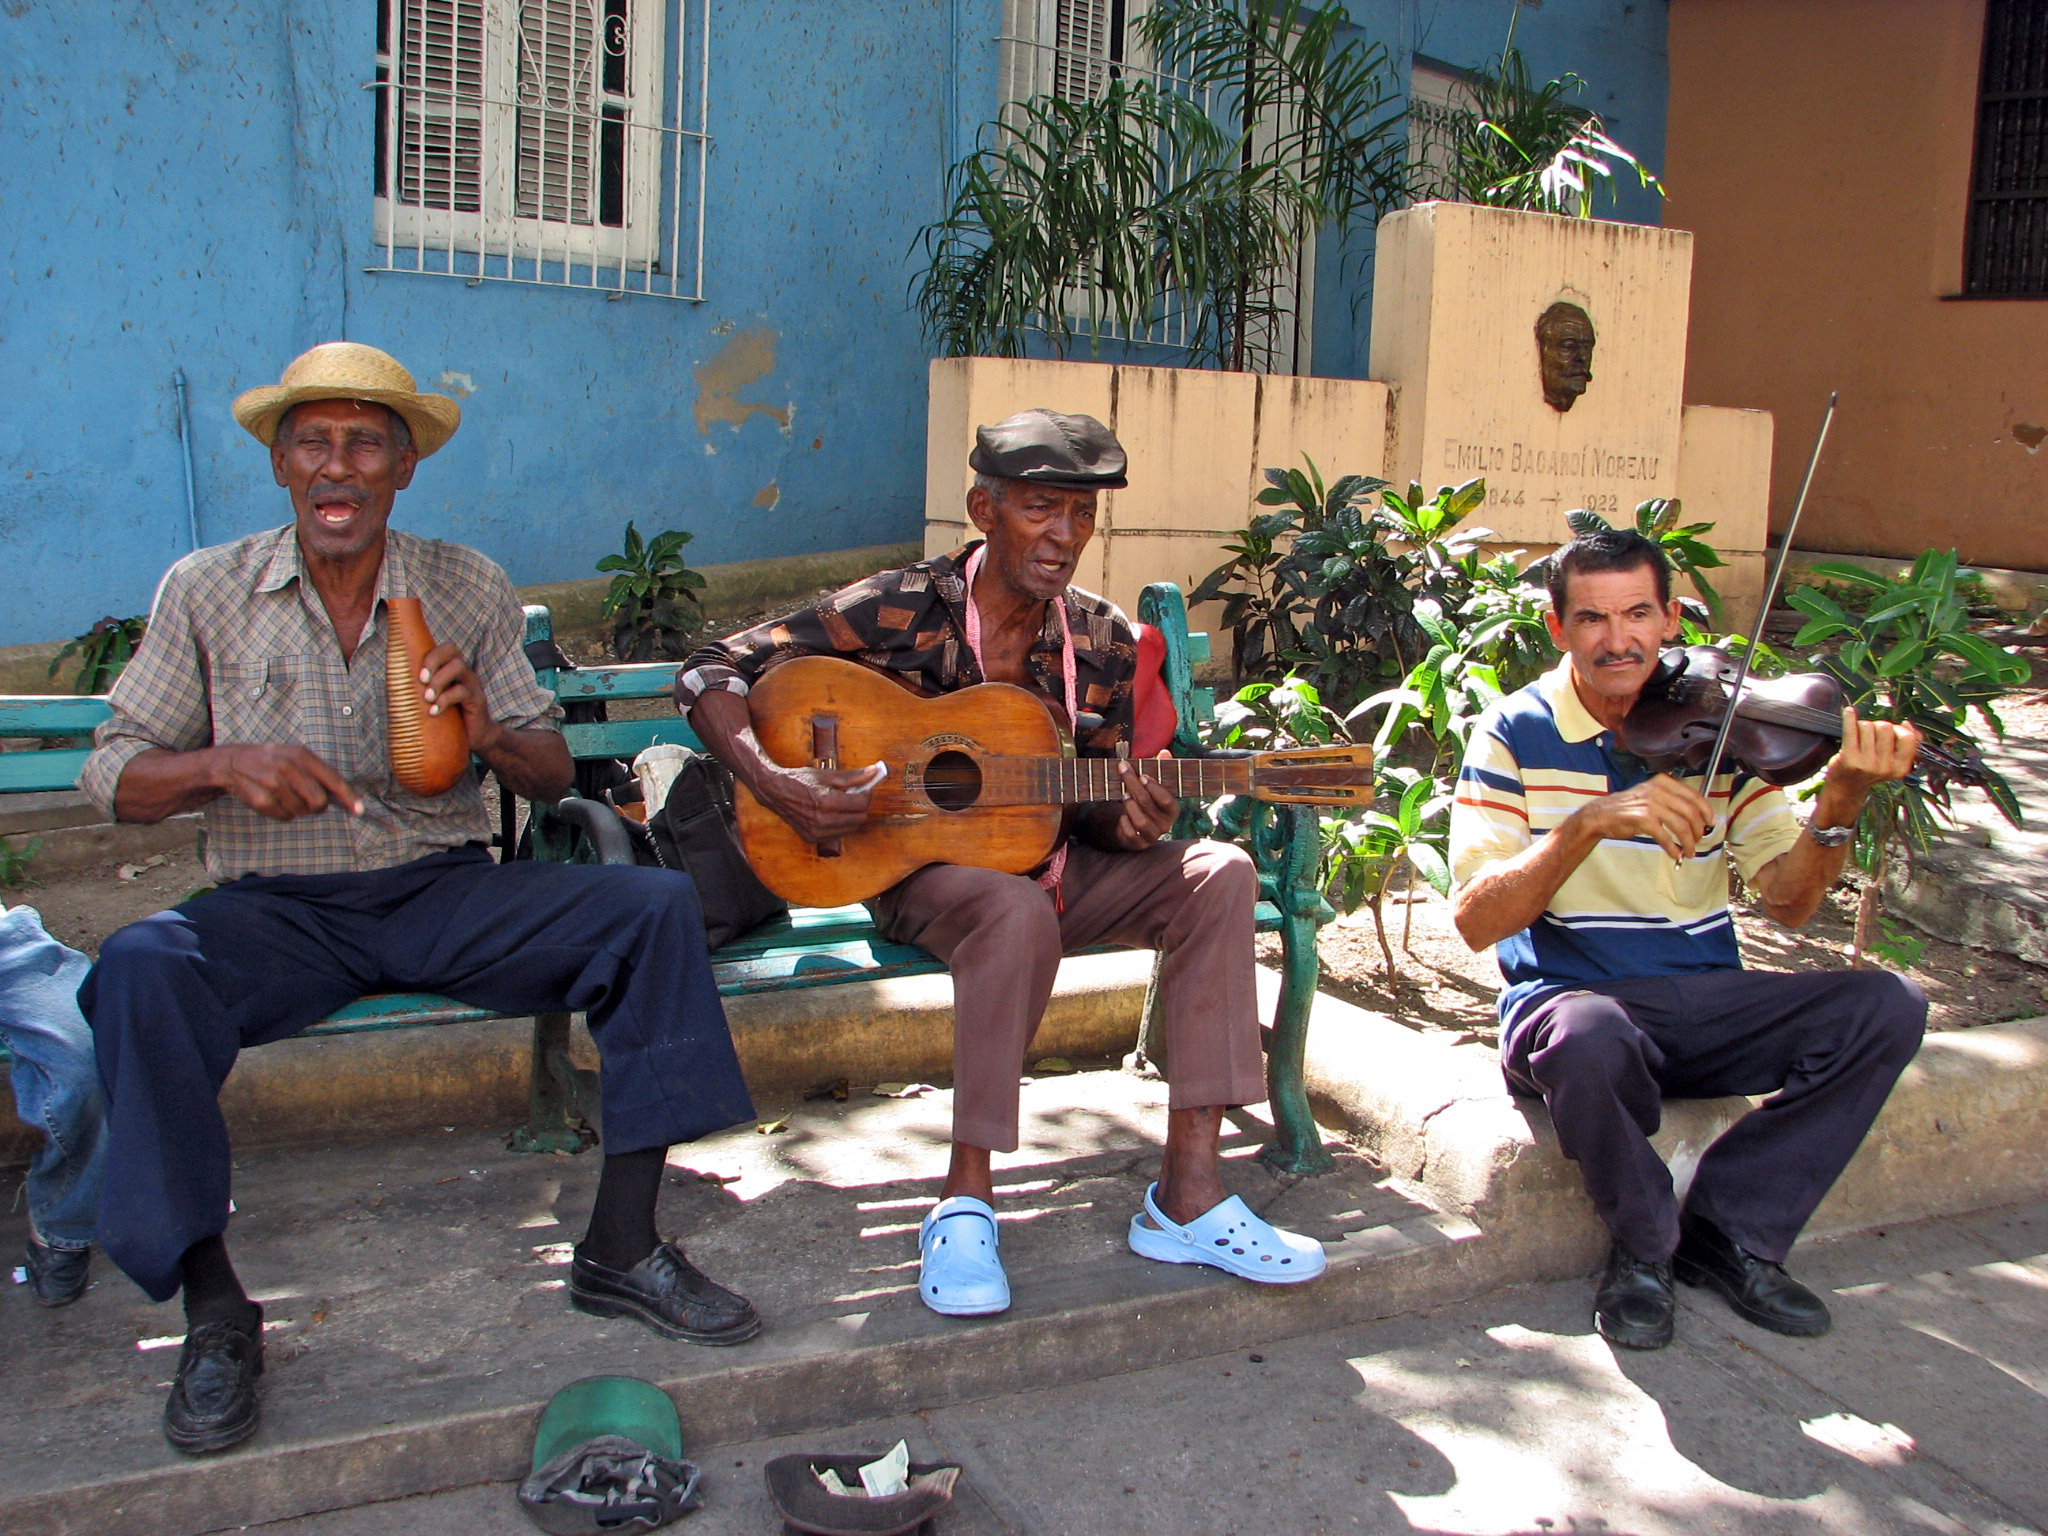 """Santiago de Cuba"" by  marika_bortolami  on Flickr"